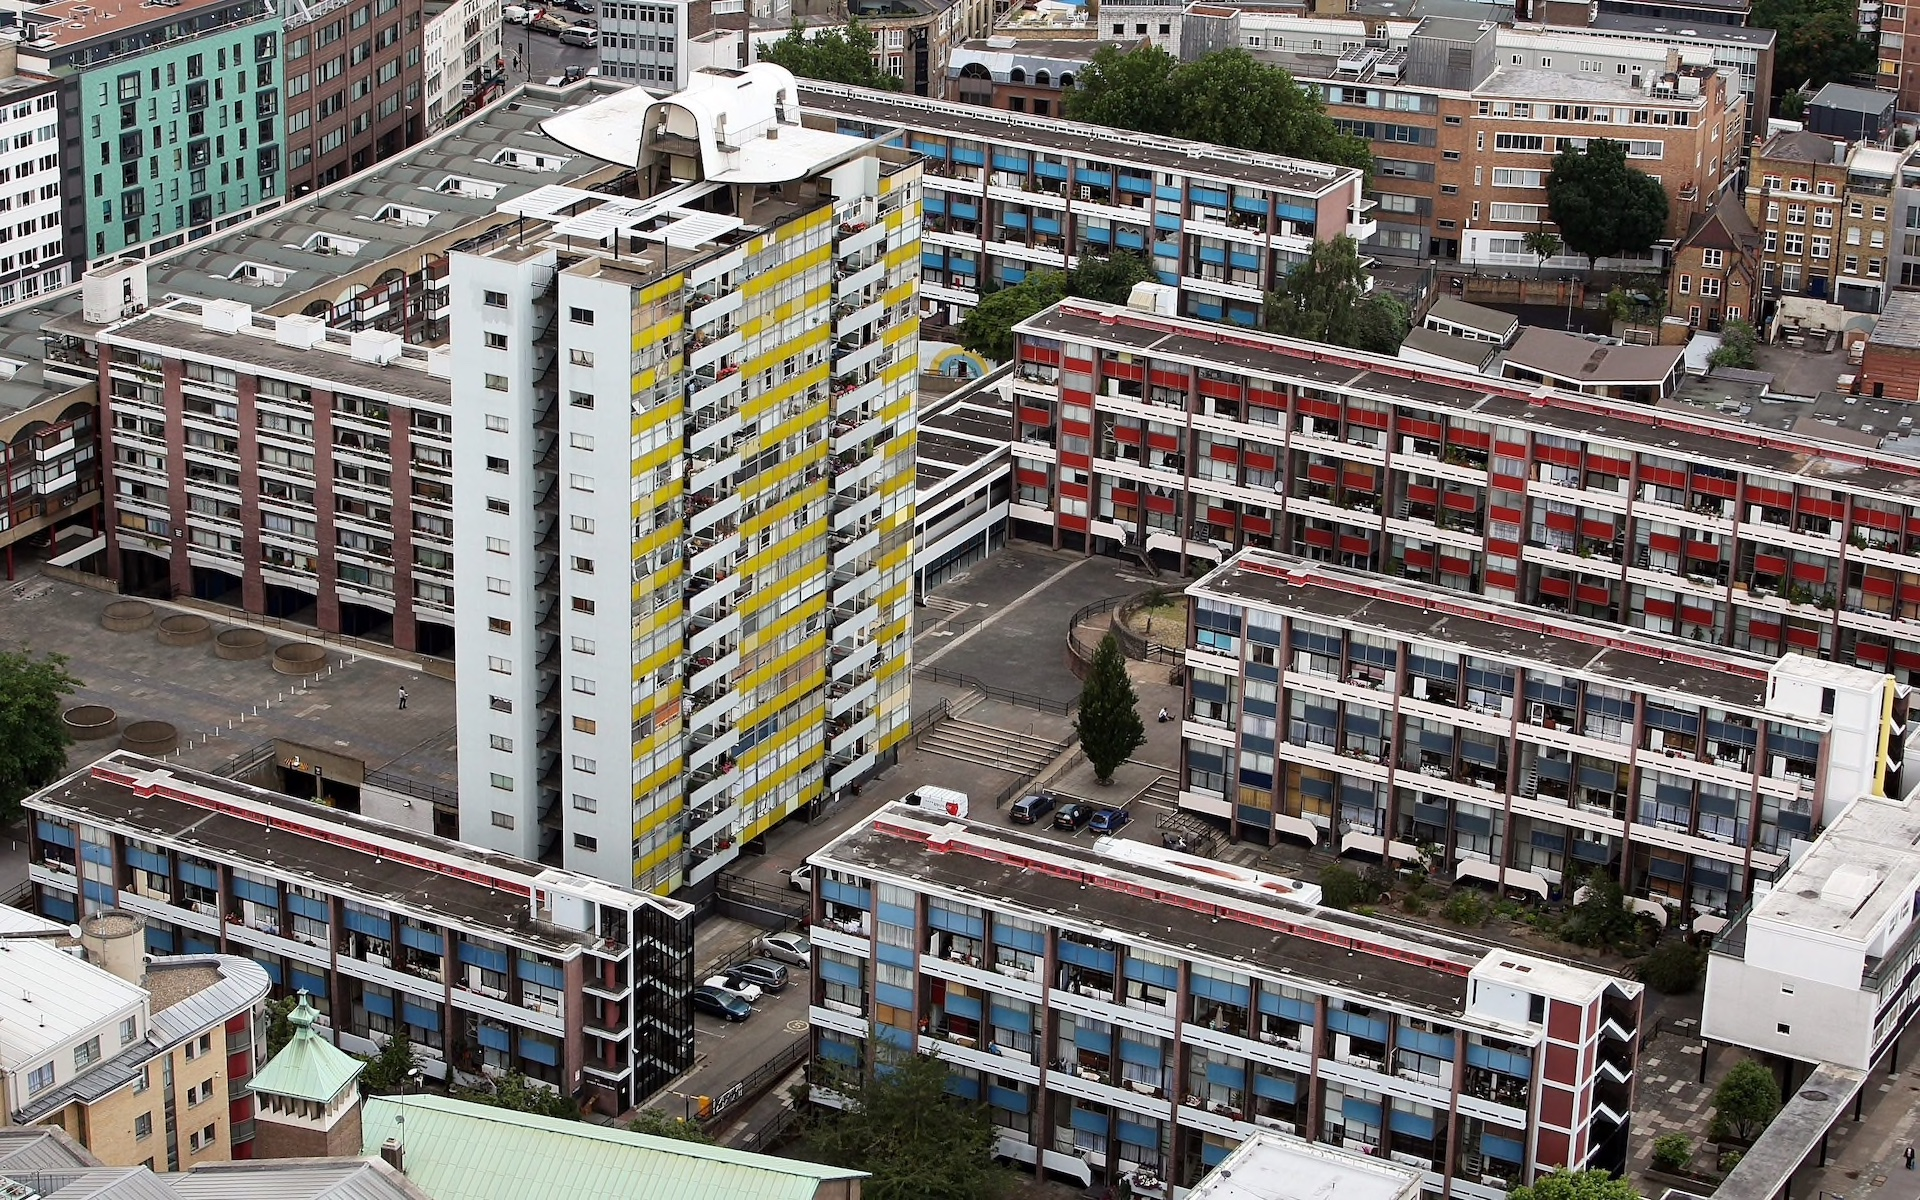 High-density housing is seen as a solution to the housing crisis but is this how we want to live?